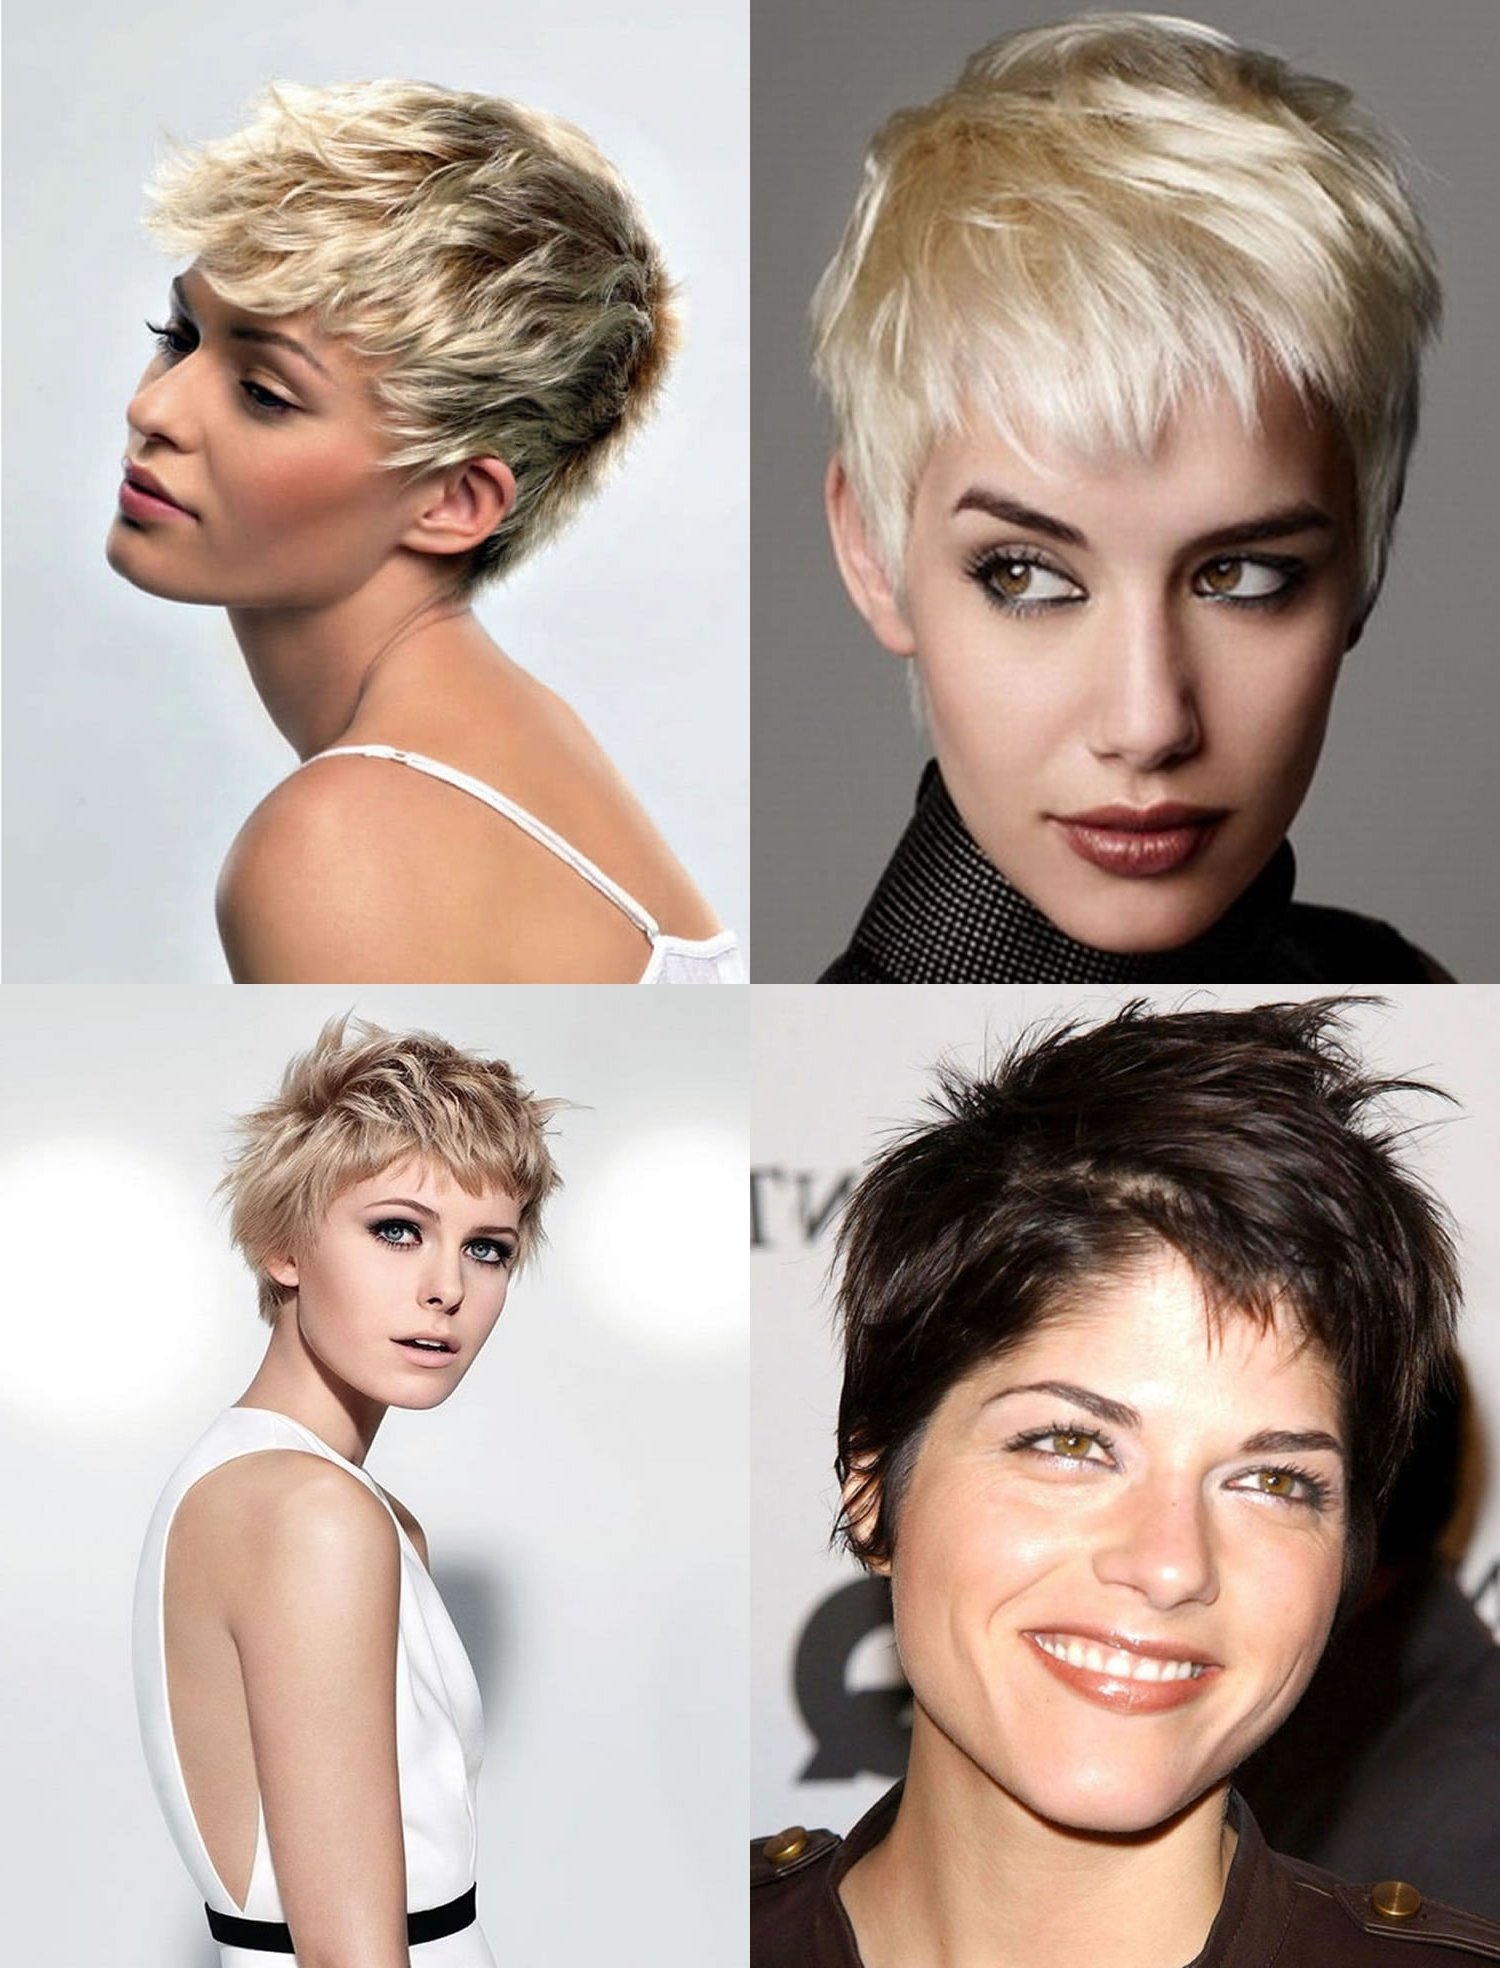 Gallery of Pixie Hairstyles For Diamond Shaped Face View 2 of 15